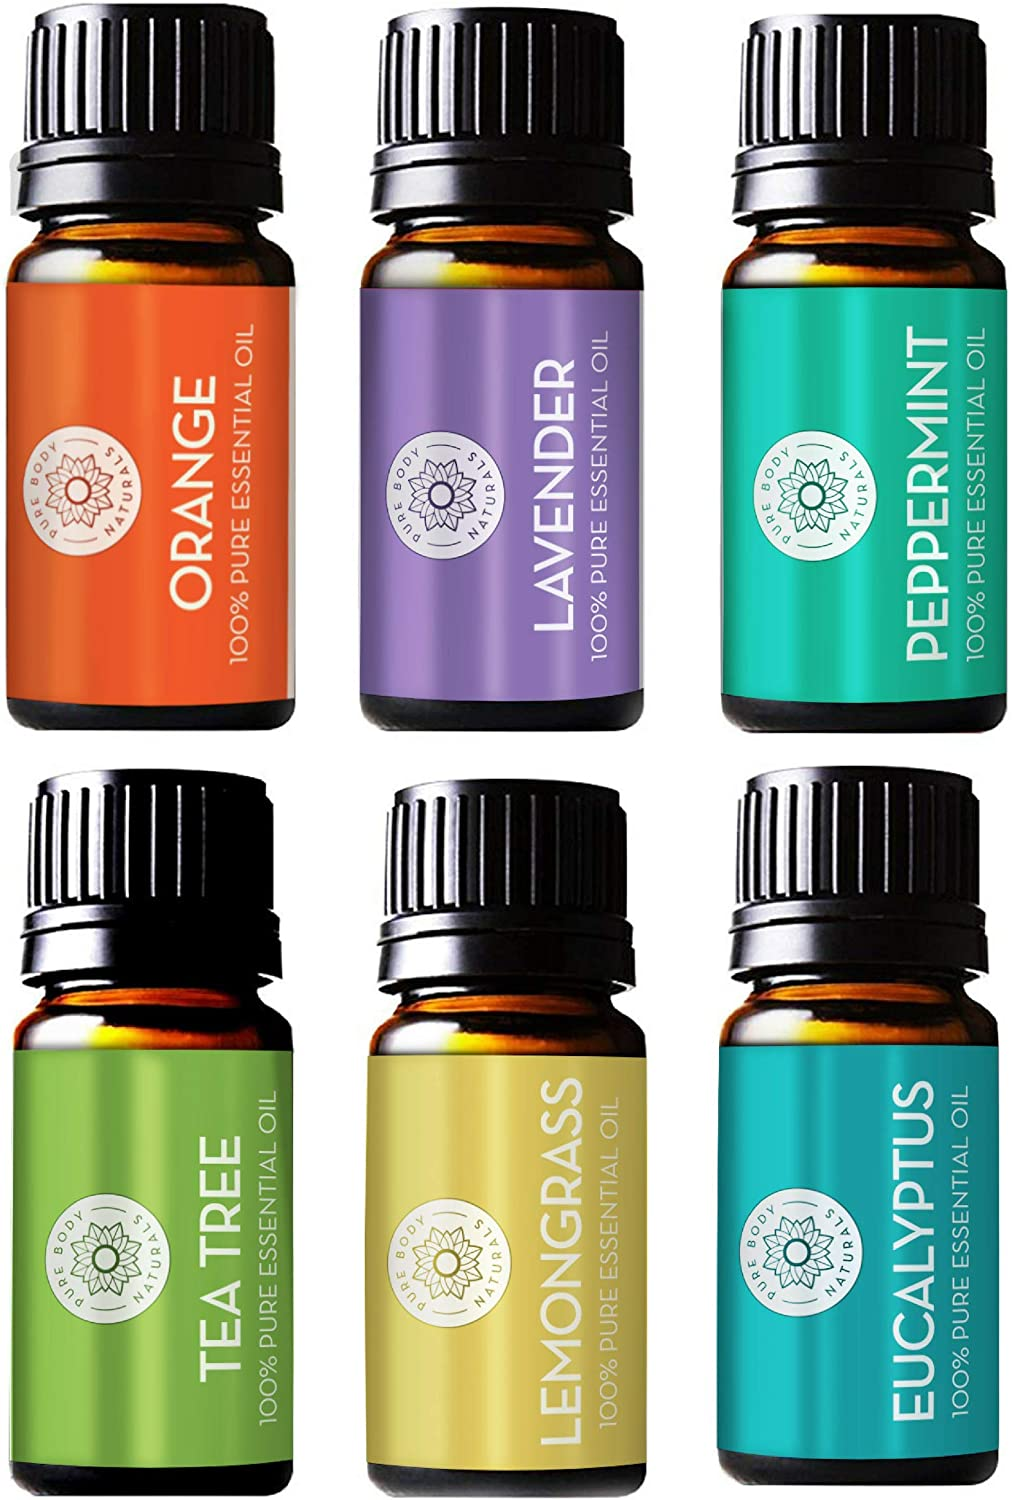 Pure Body Natural Aromatherapy Diffuser Oils Set